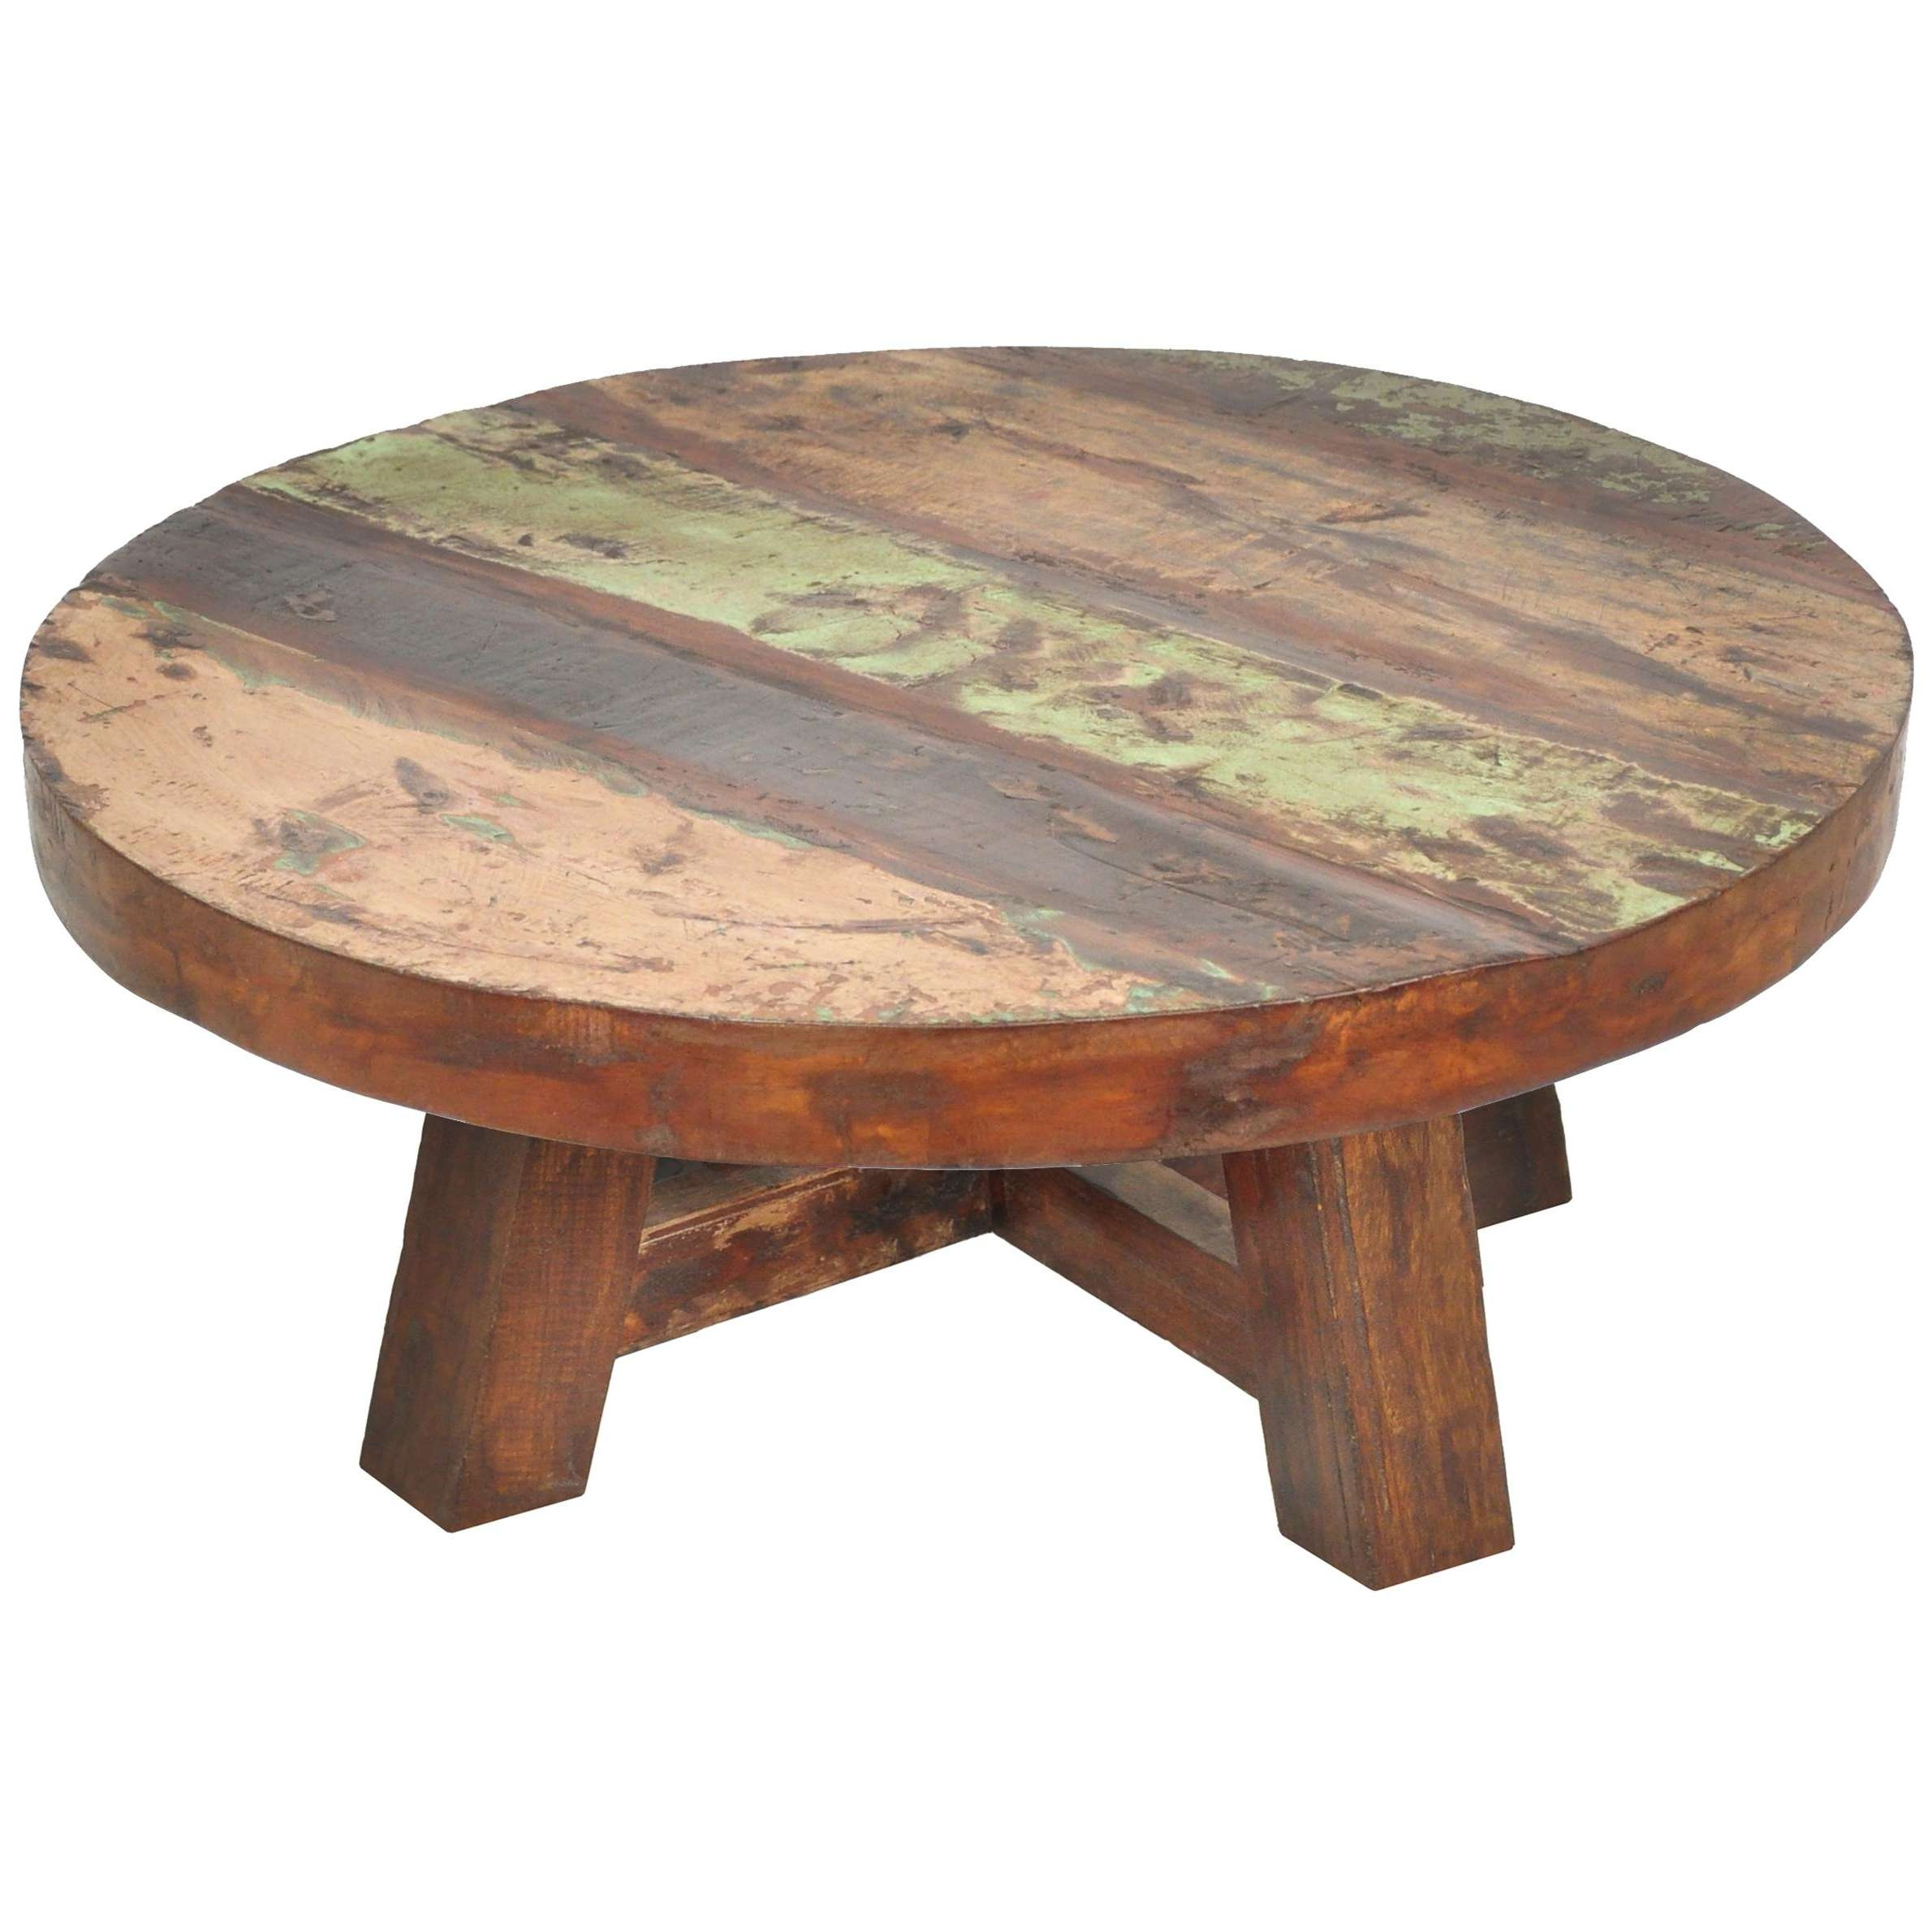 20 Best Wooden Garden Coffee Tables